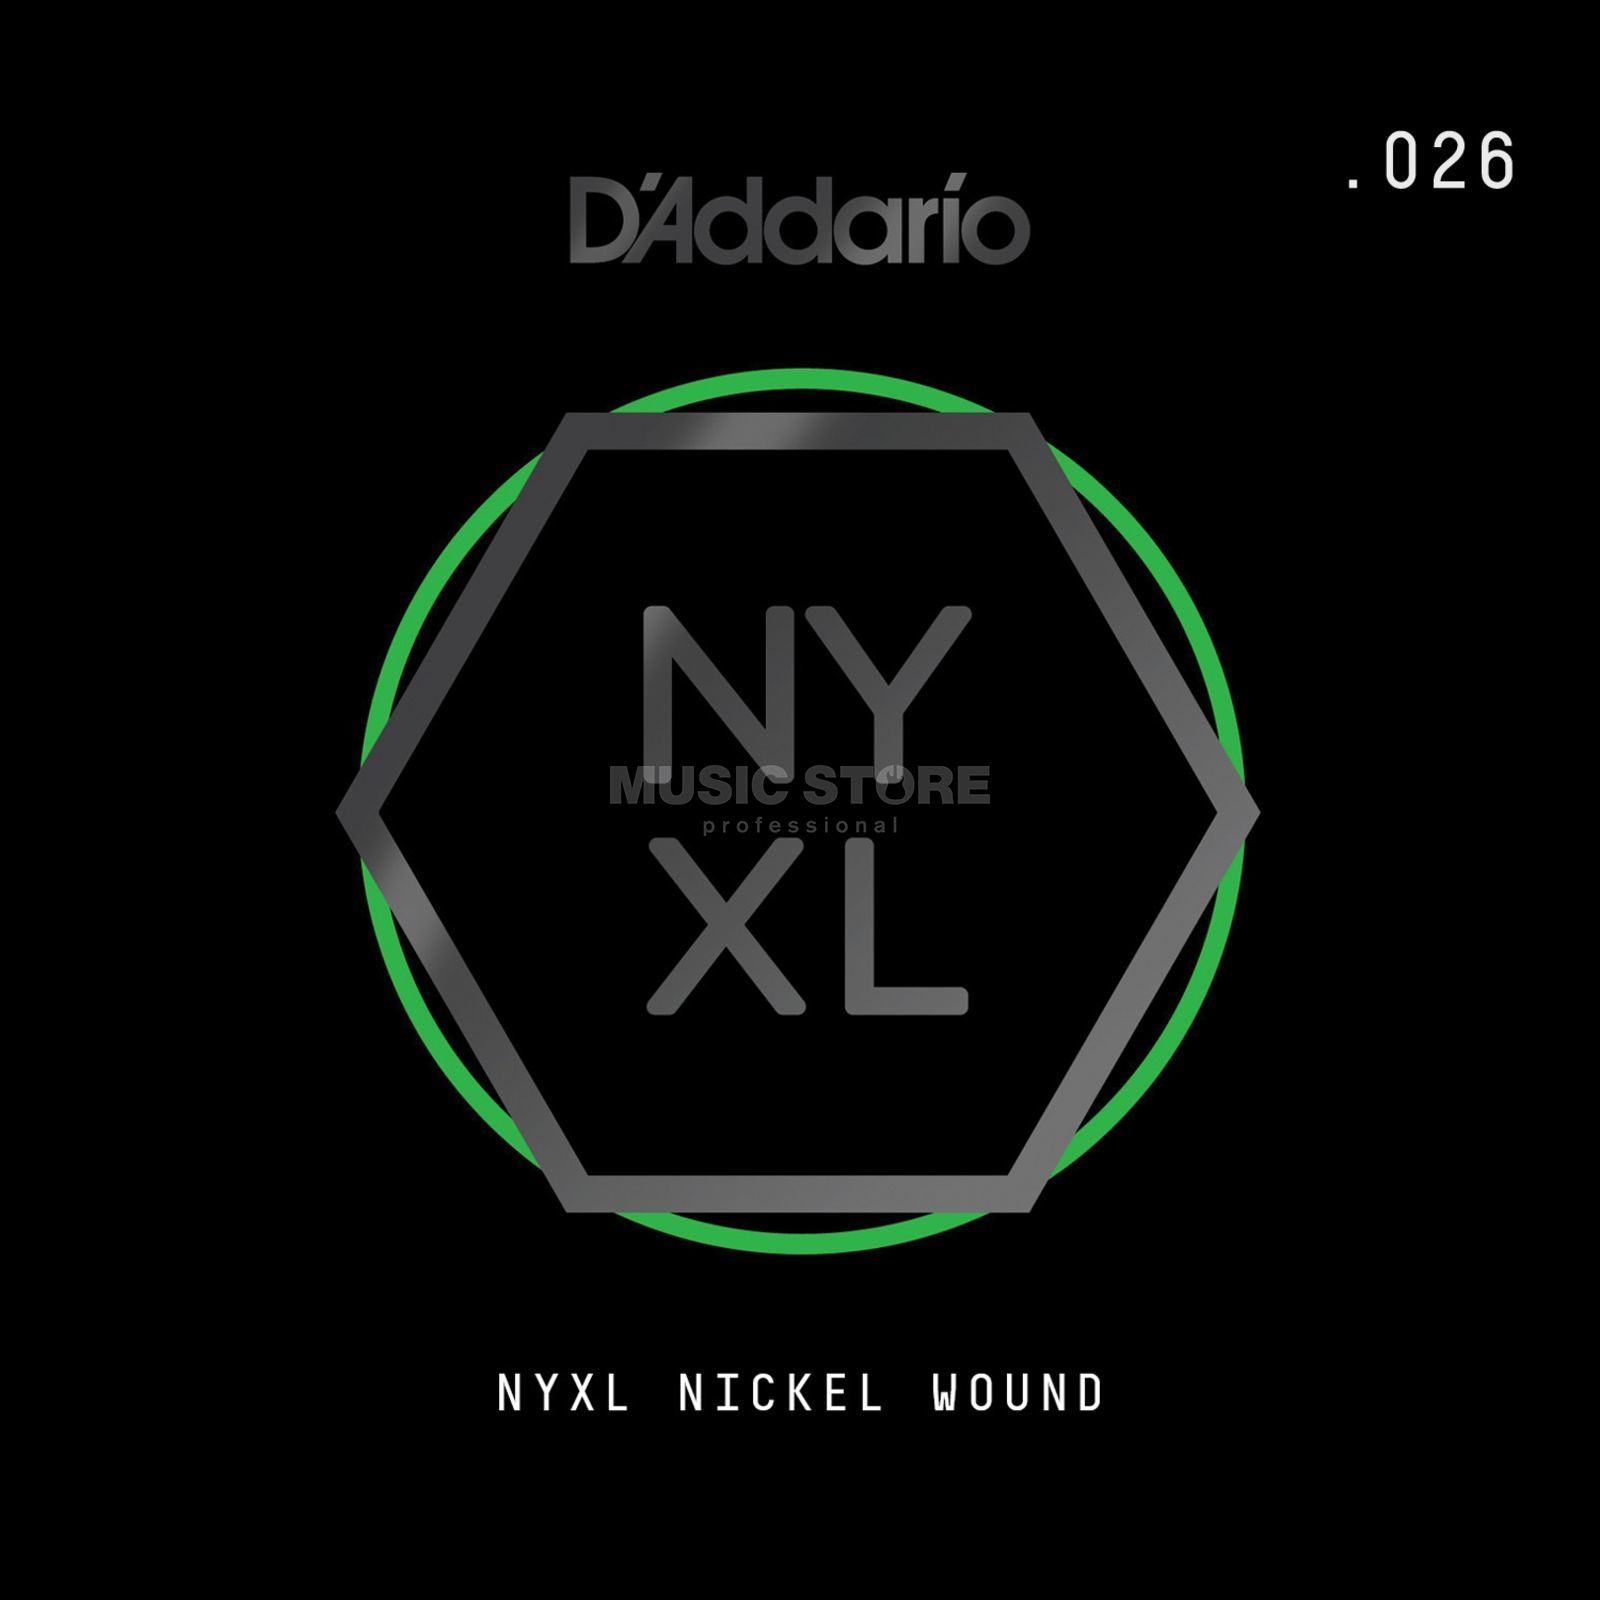 D'Addario NYNW026 Single String Nickel Wound Product Image